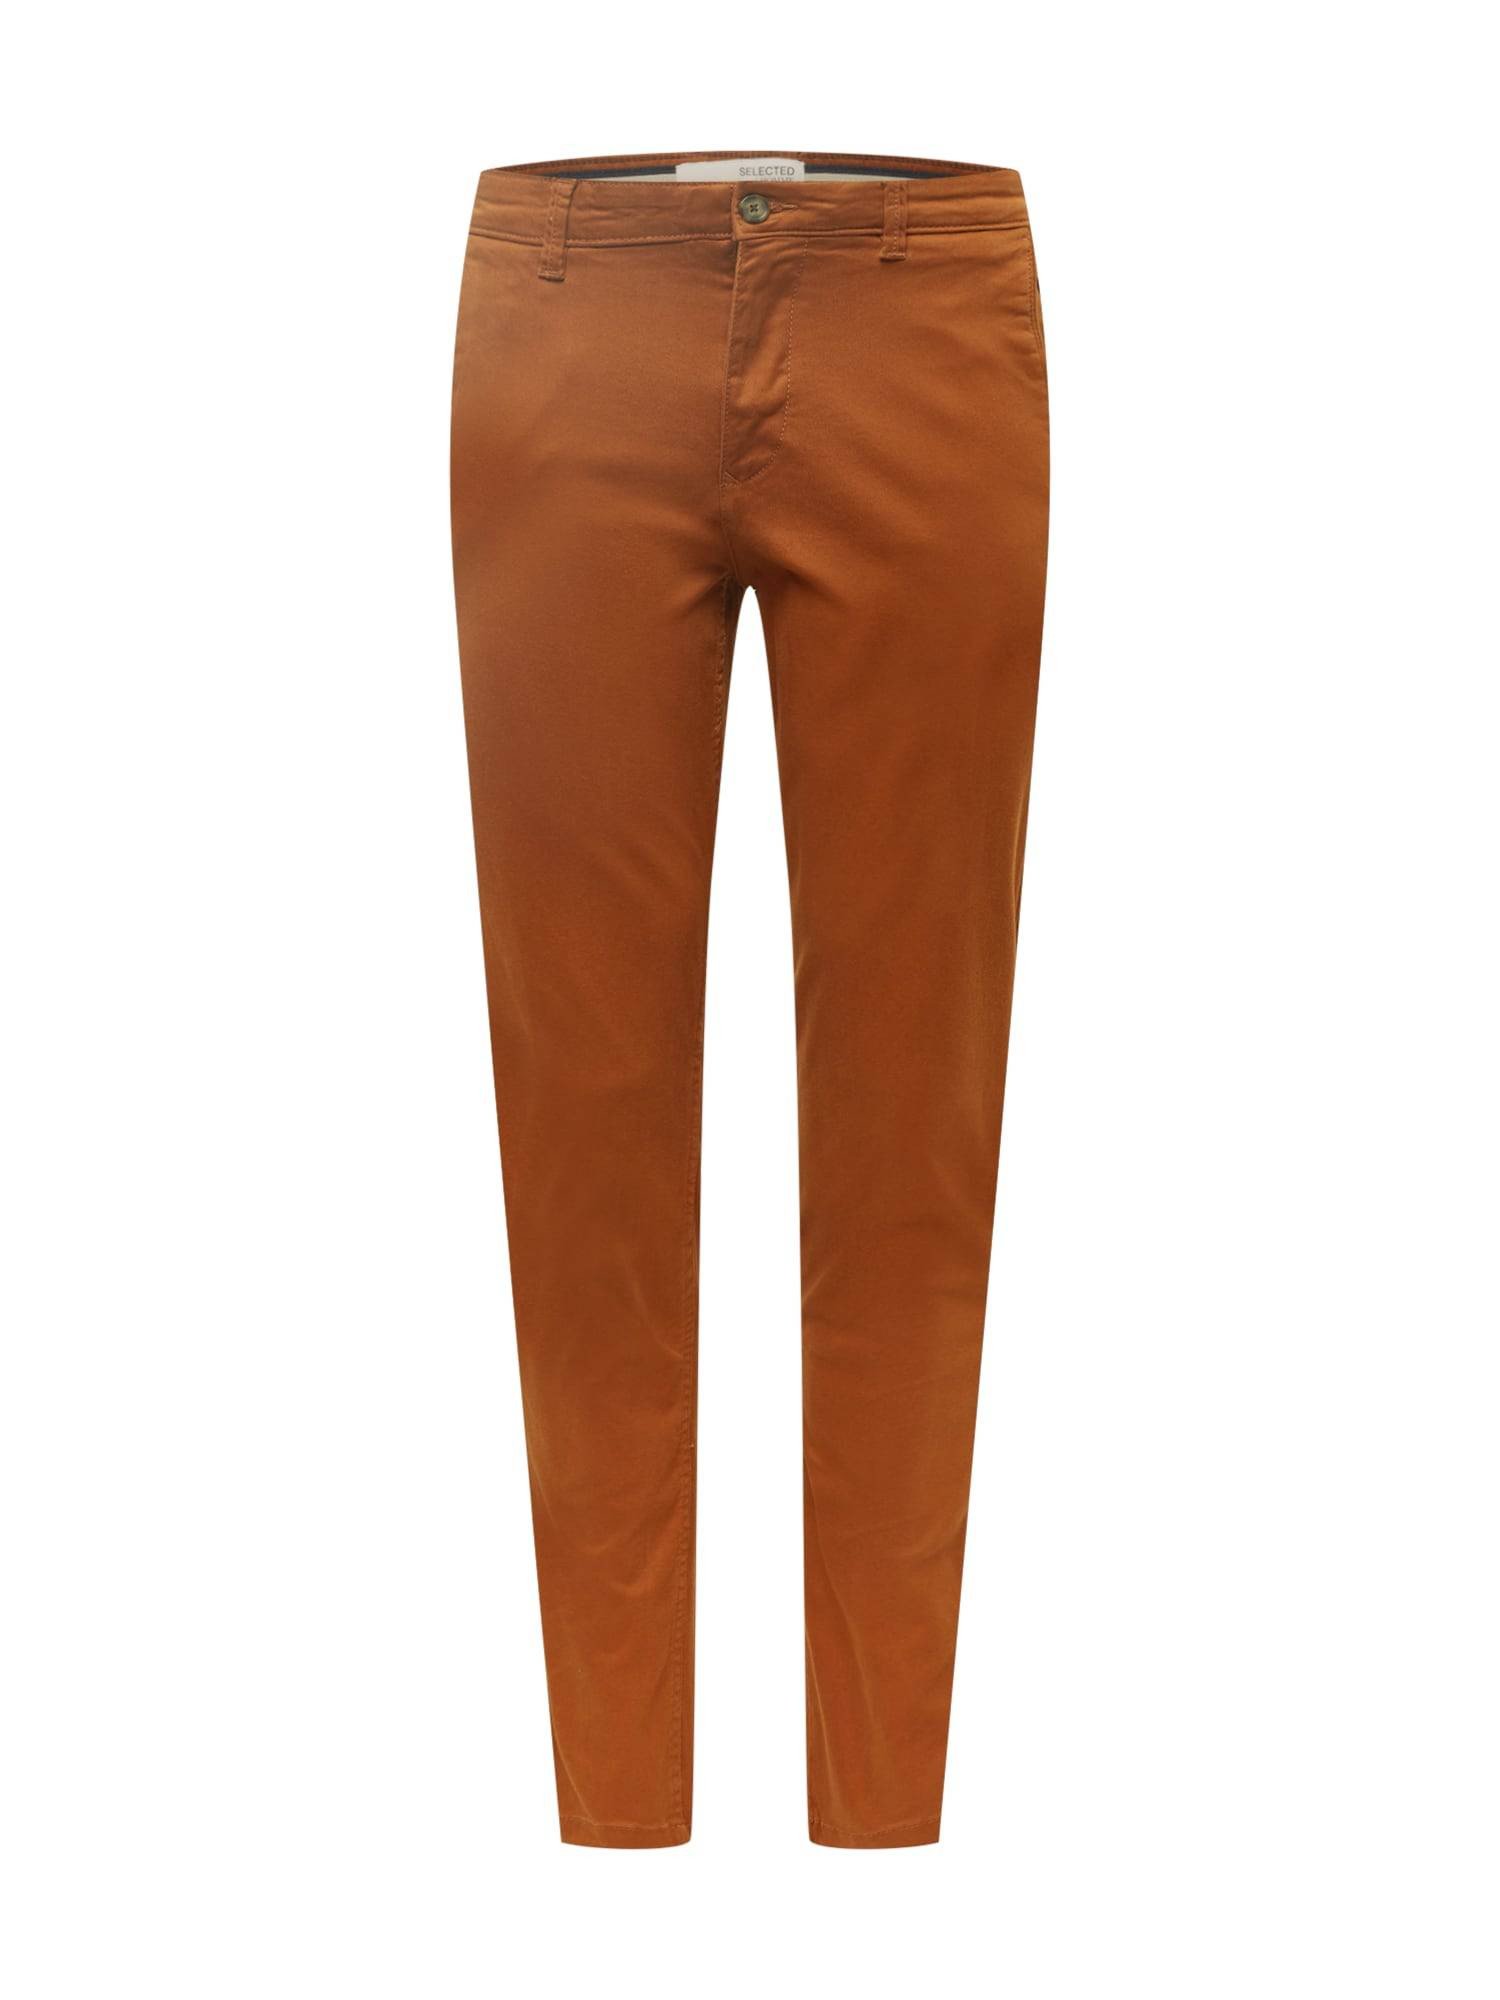 SELECTED HOMME Pantalon chino 'New Paris'  - Marron - Taille: 30 - male